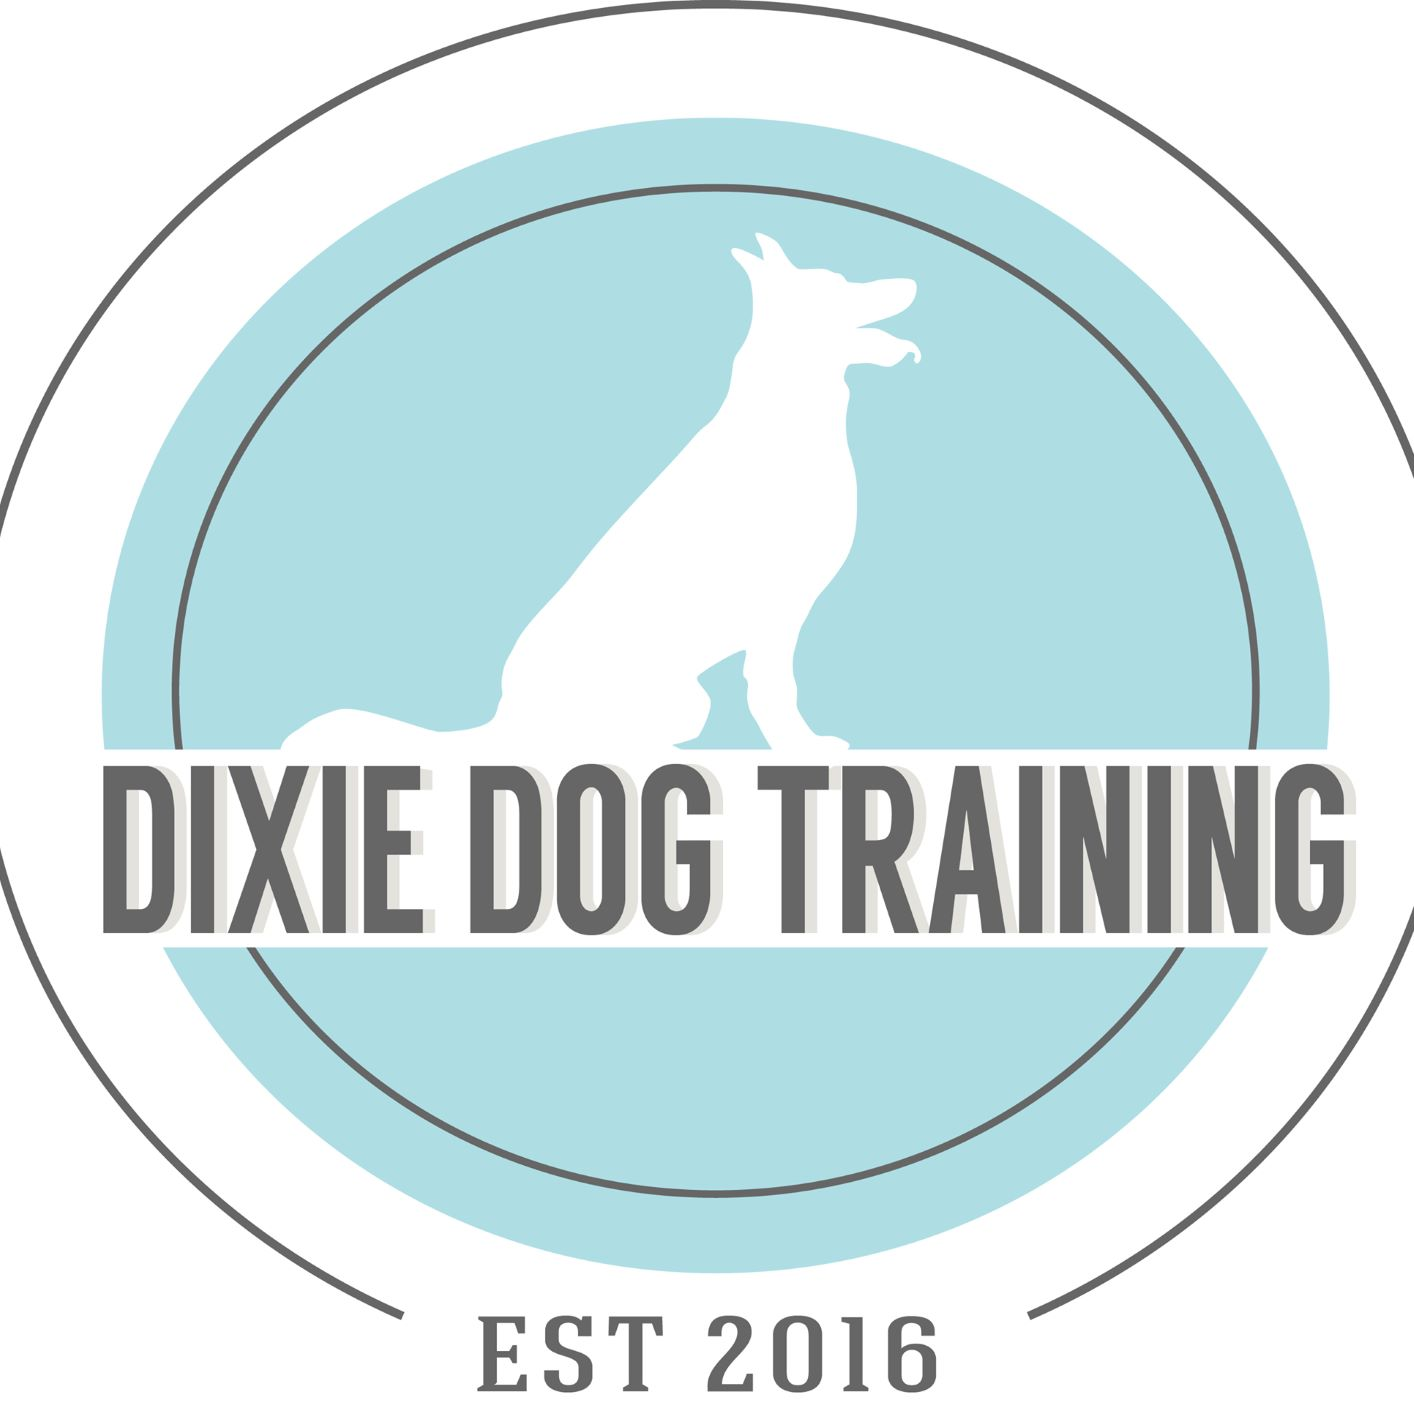 Dixie Dog Training image